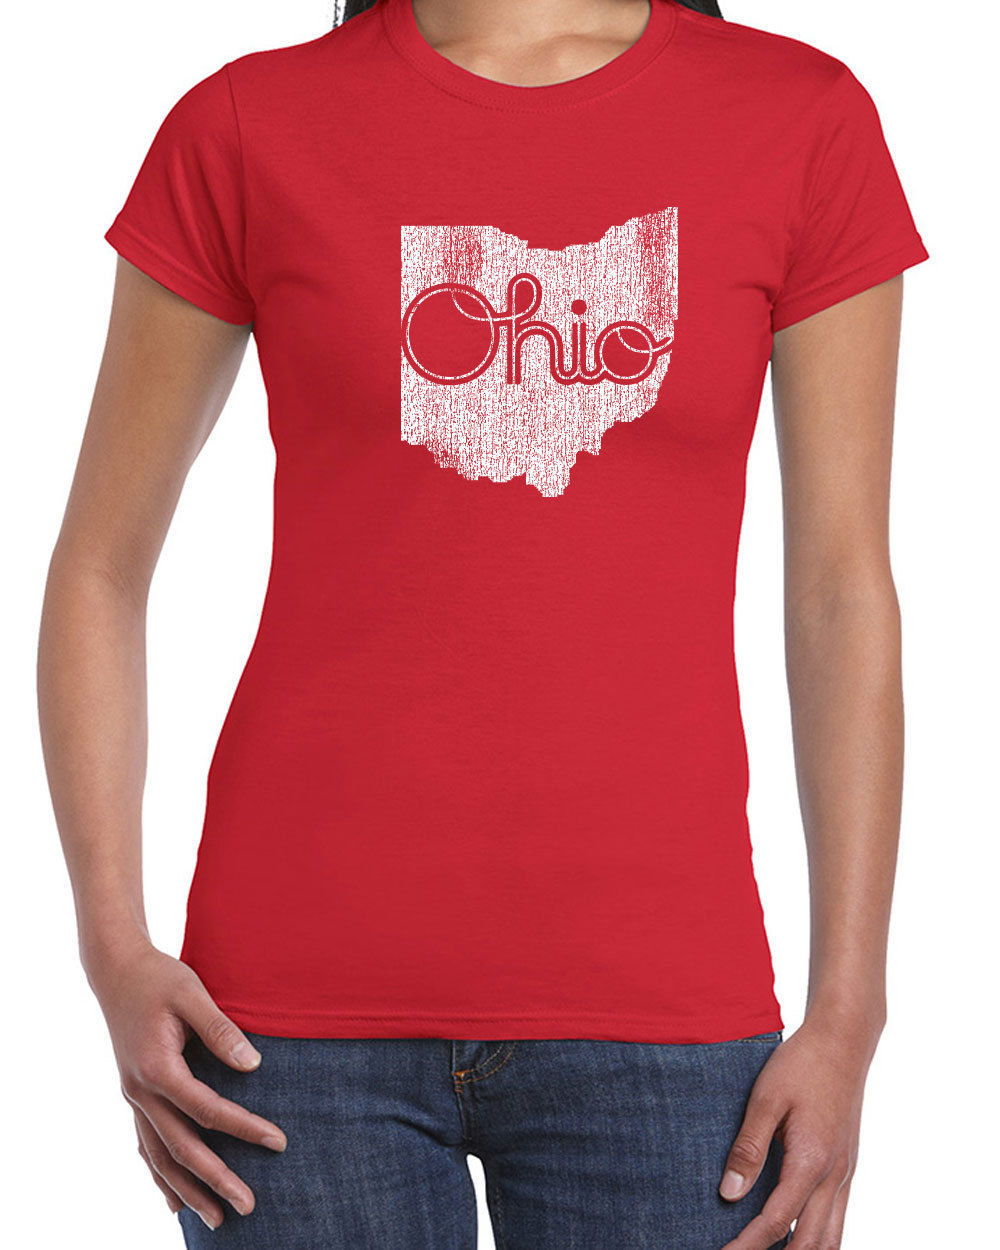 143 Ohio State women's T-Shirt Ohio Pride college state sports new Sizes/Colors